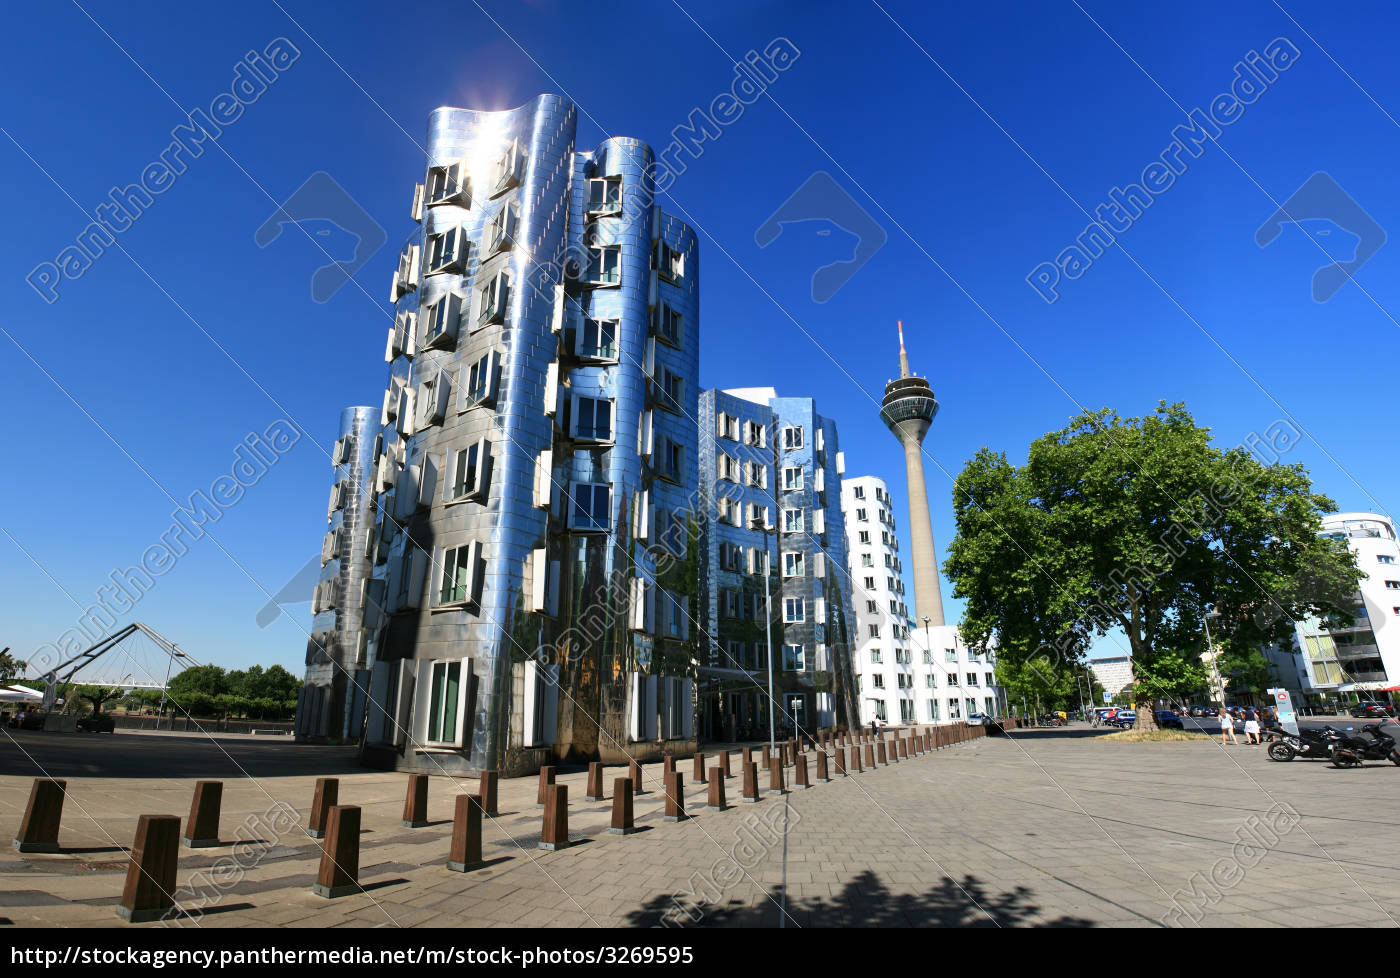 gehry, buildings, and, rhine, tower - 3269595